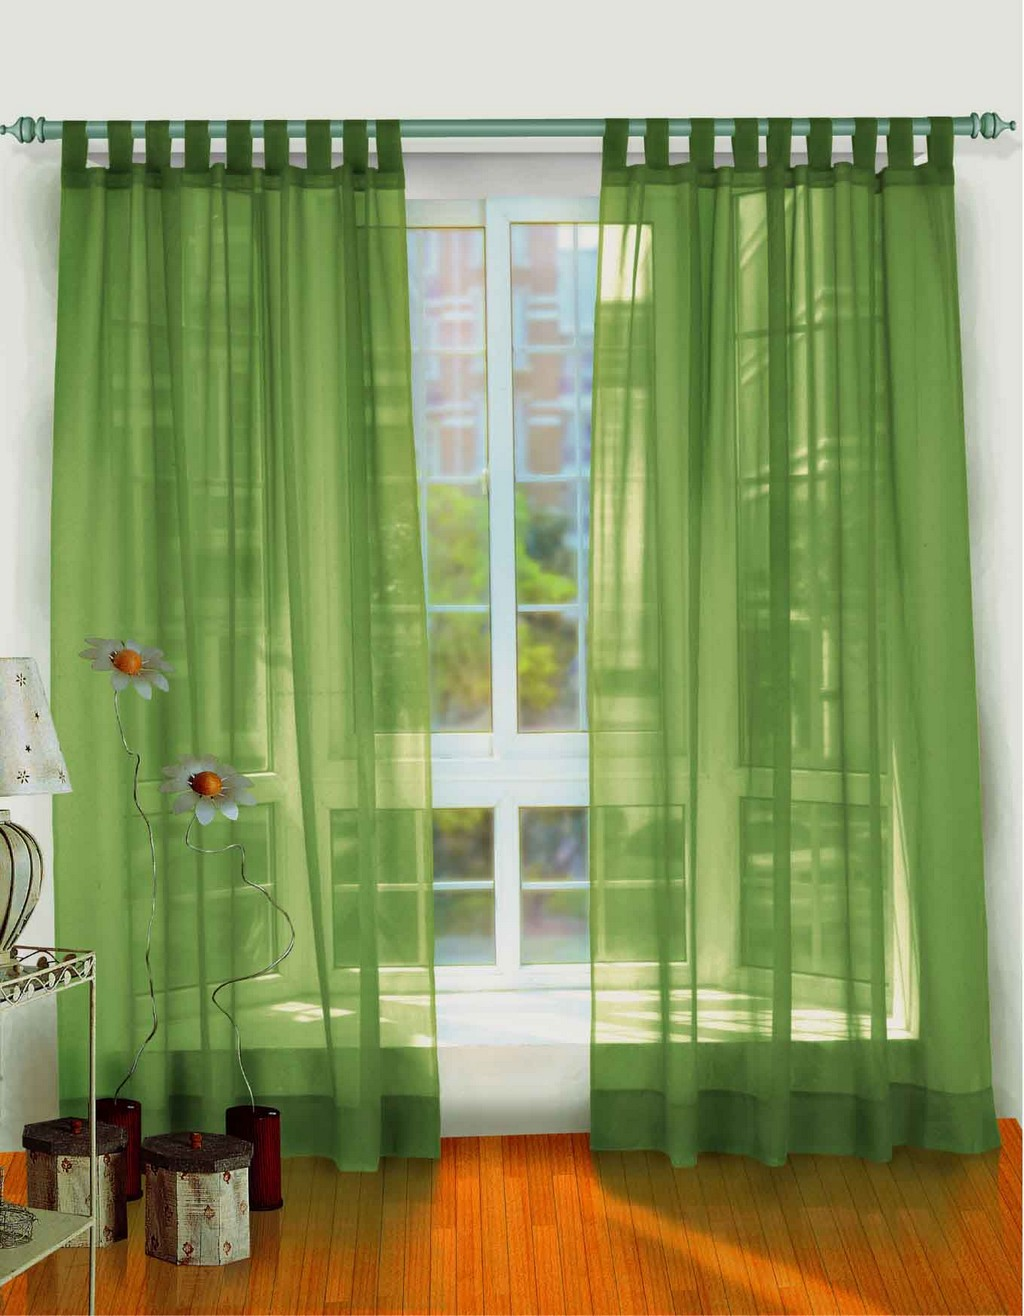 supreme drapes, striped drapes, chenille drapes, custom drapes